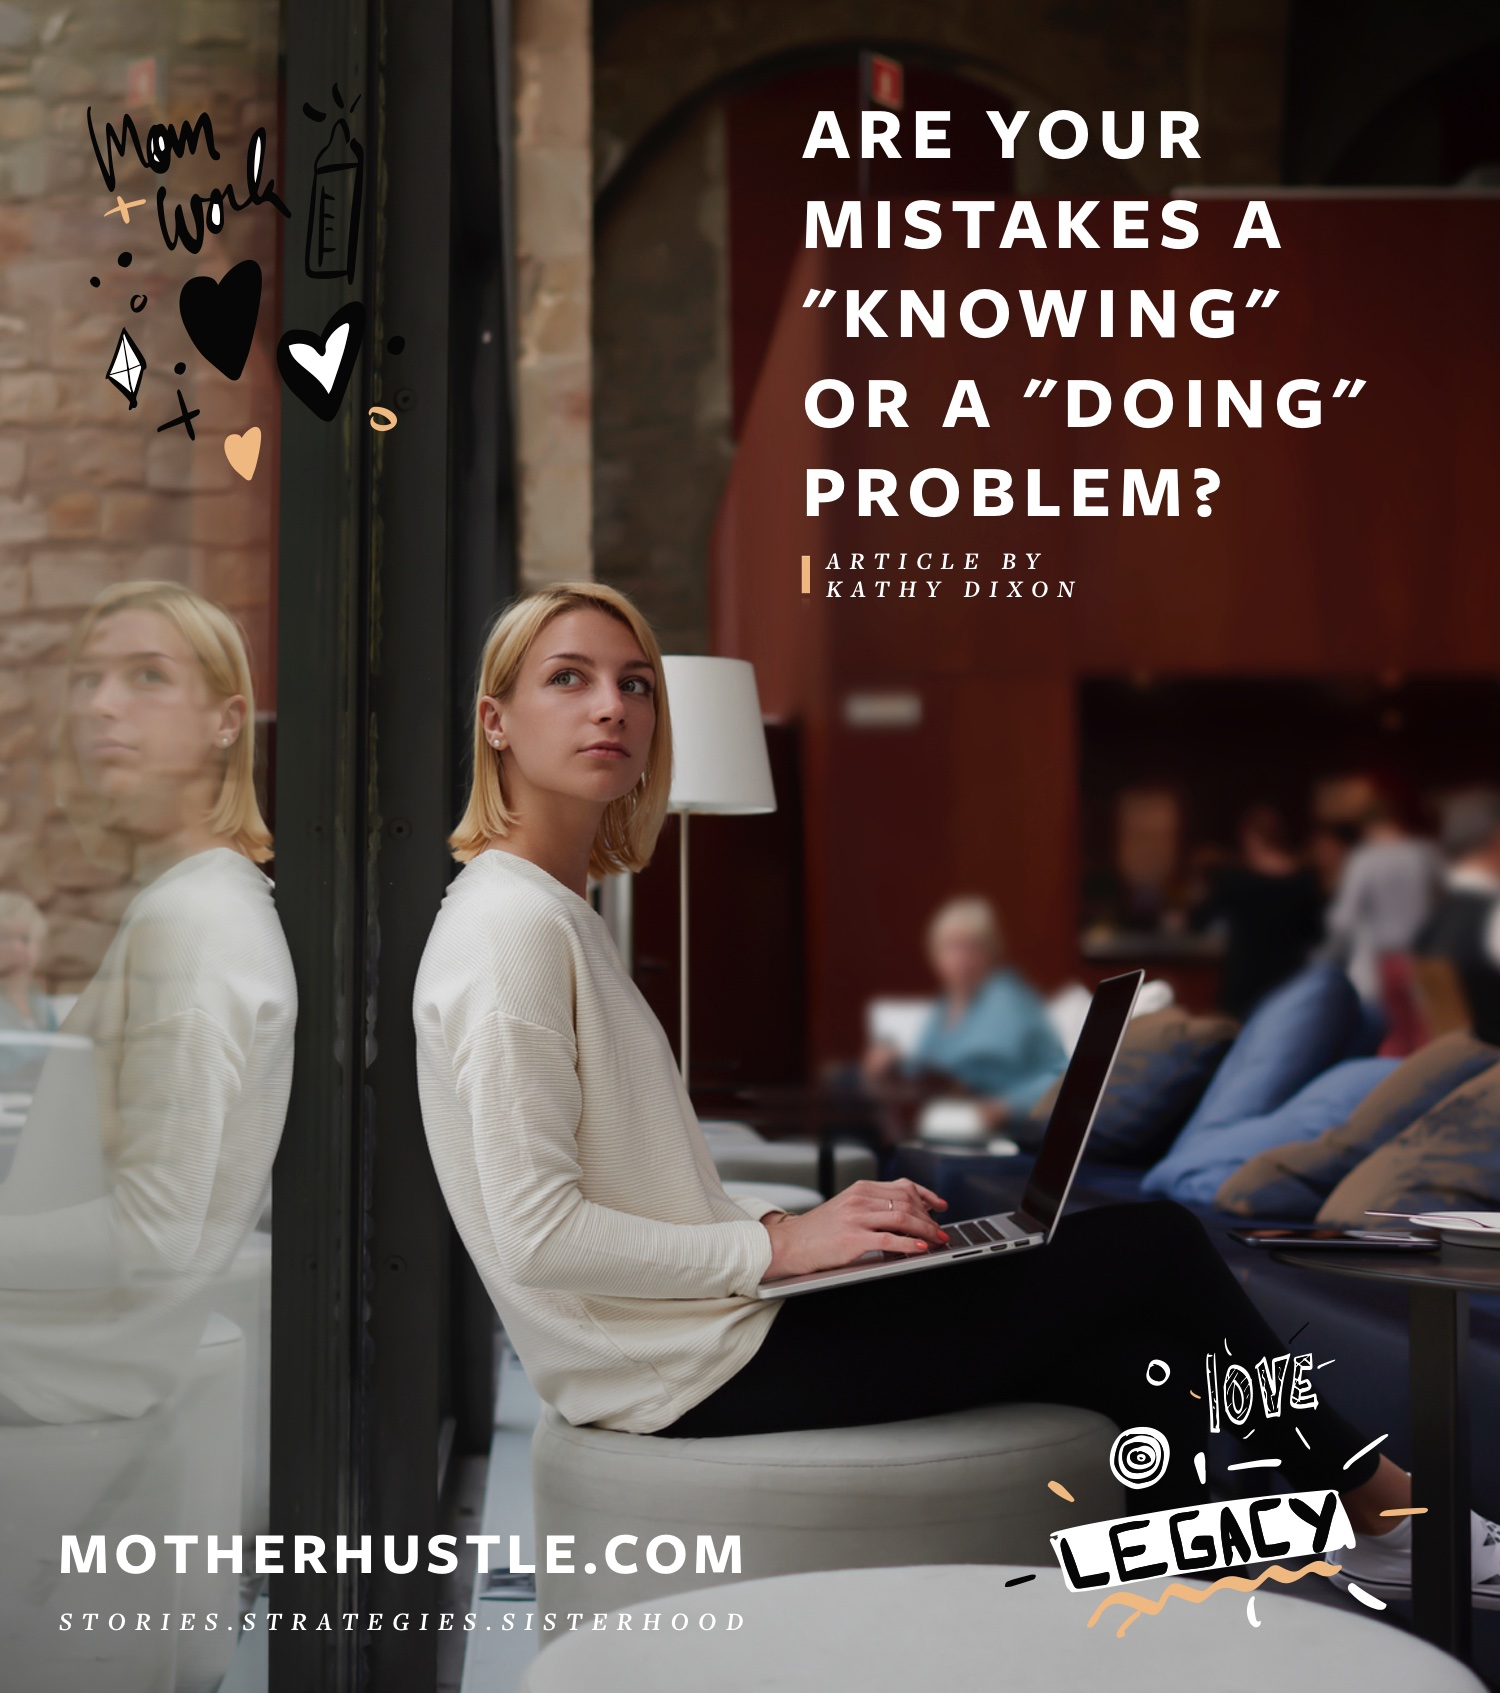 Are Your Mistakes a Knowing Problem Or A Doing Problem? - BY KATHY DIXON MOTHERHUSTLE